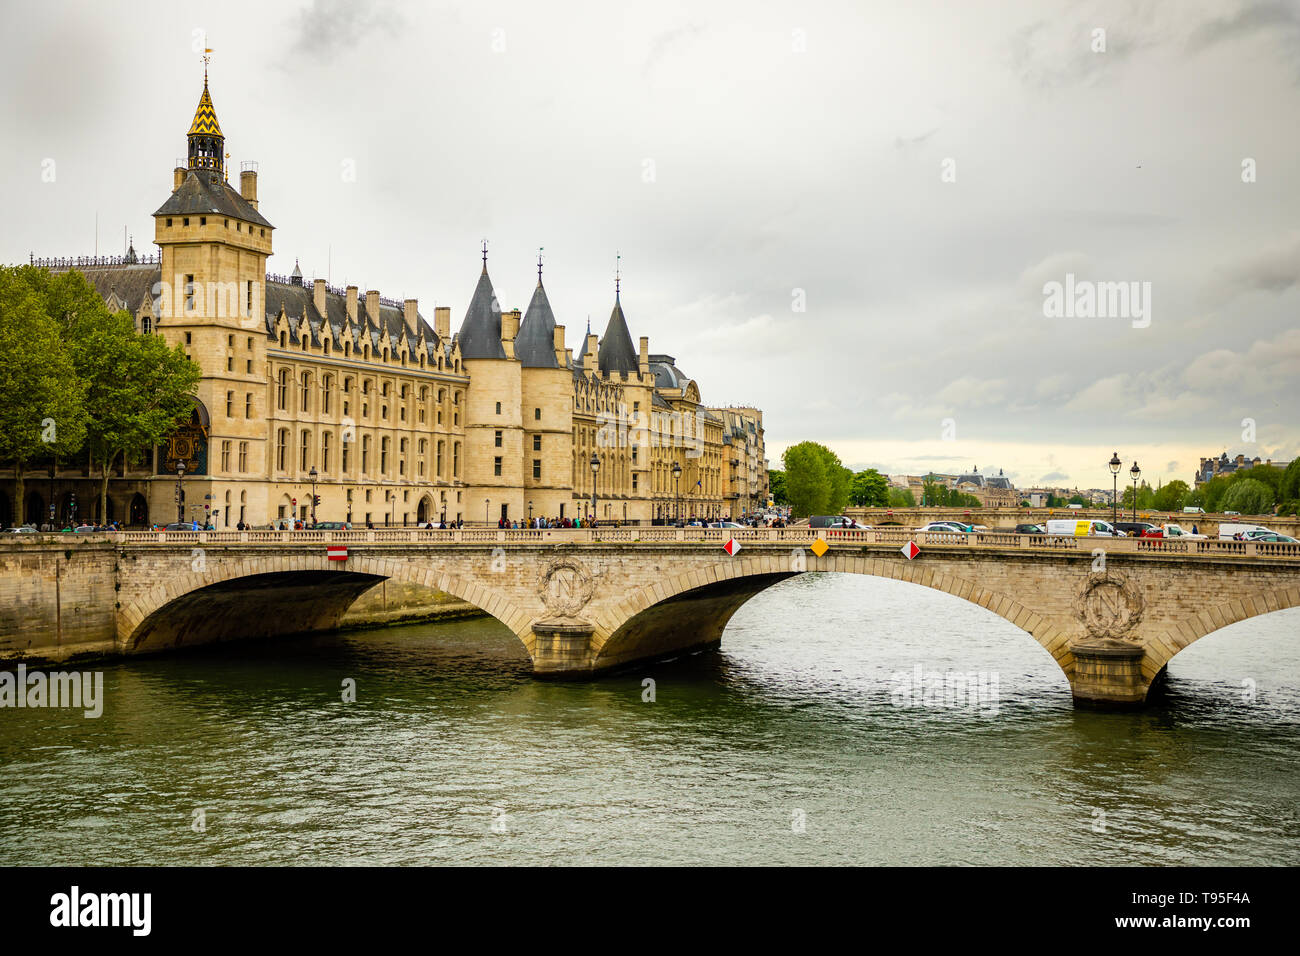 Paris, France - 24.04.2019: View of the Commercial Court of Paris and river Seine seen from Pont d'Arcole, France - Stock Image